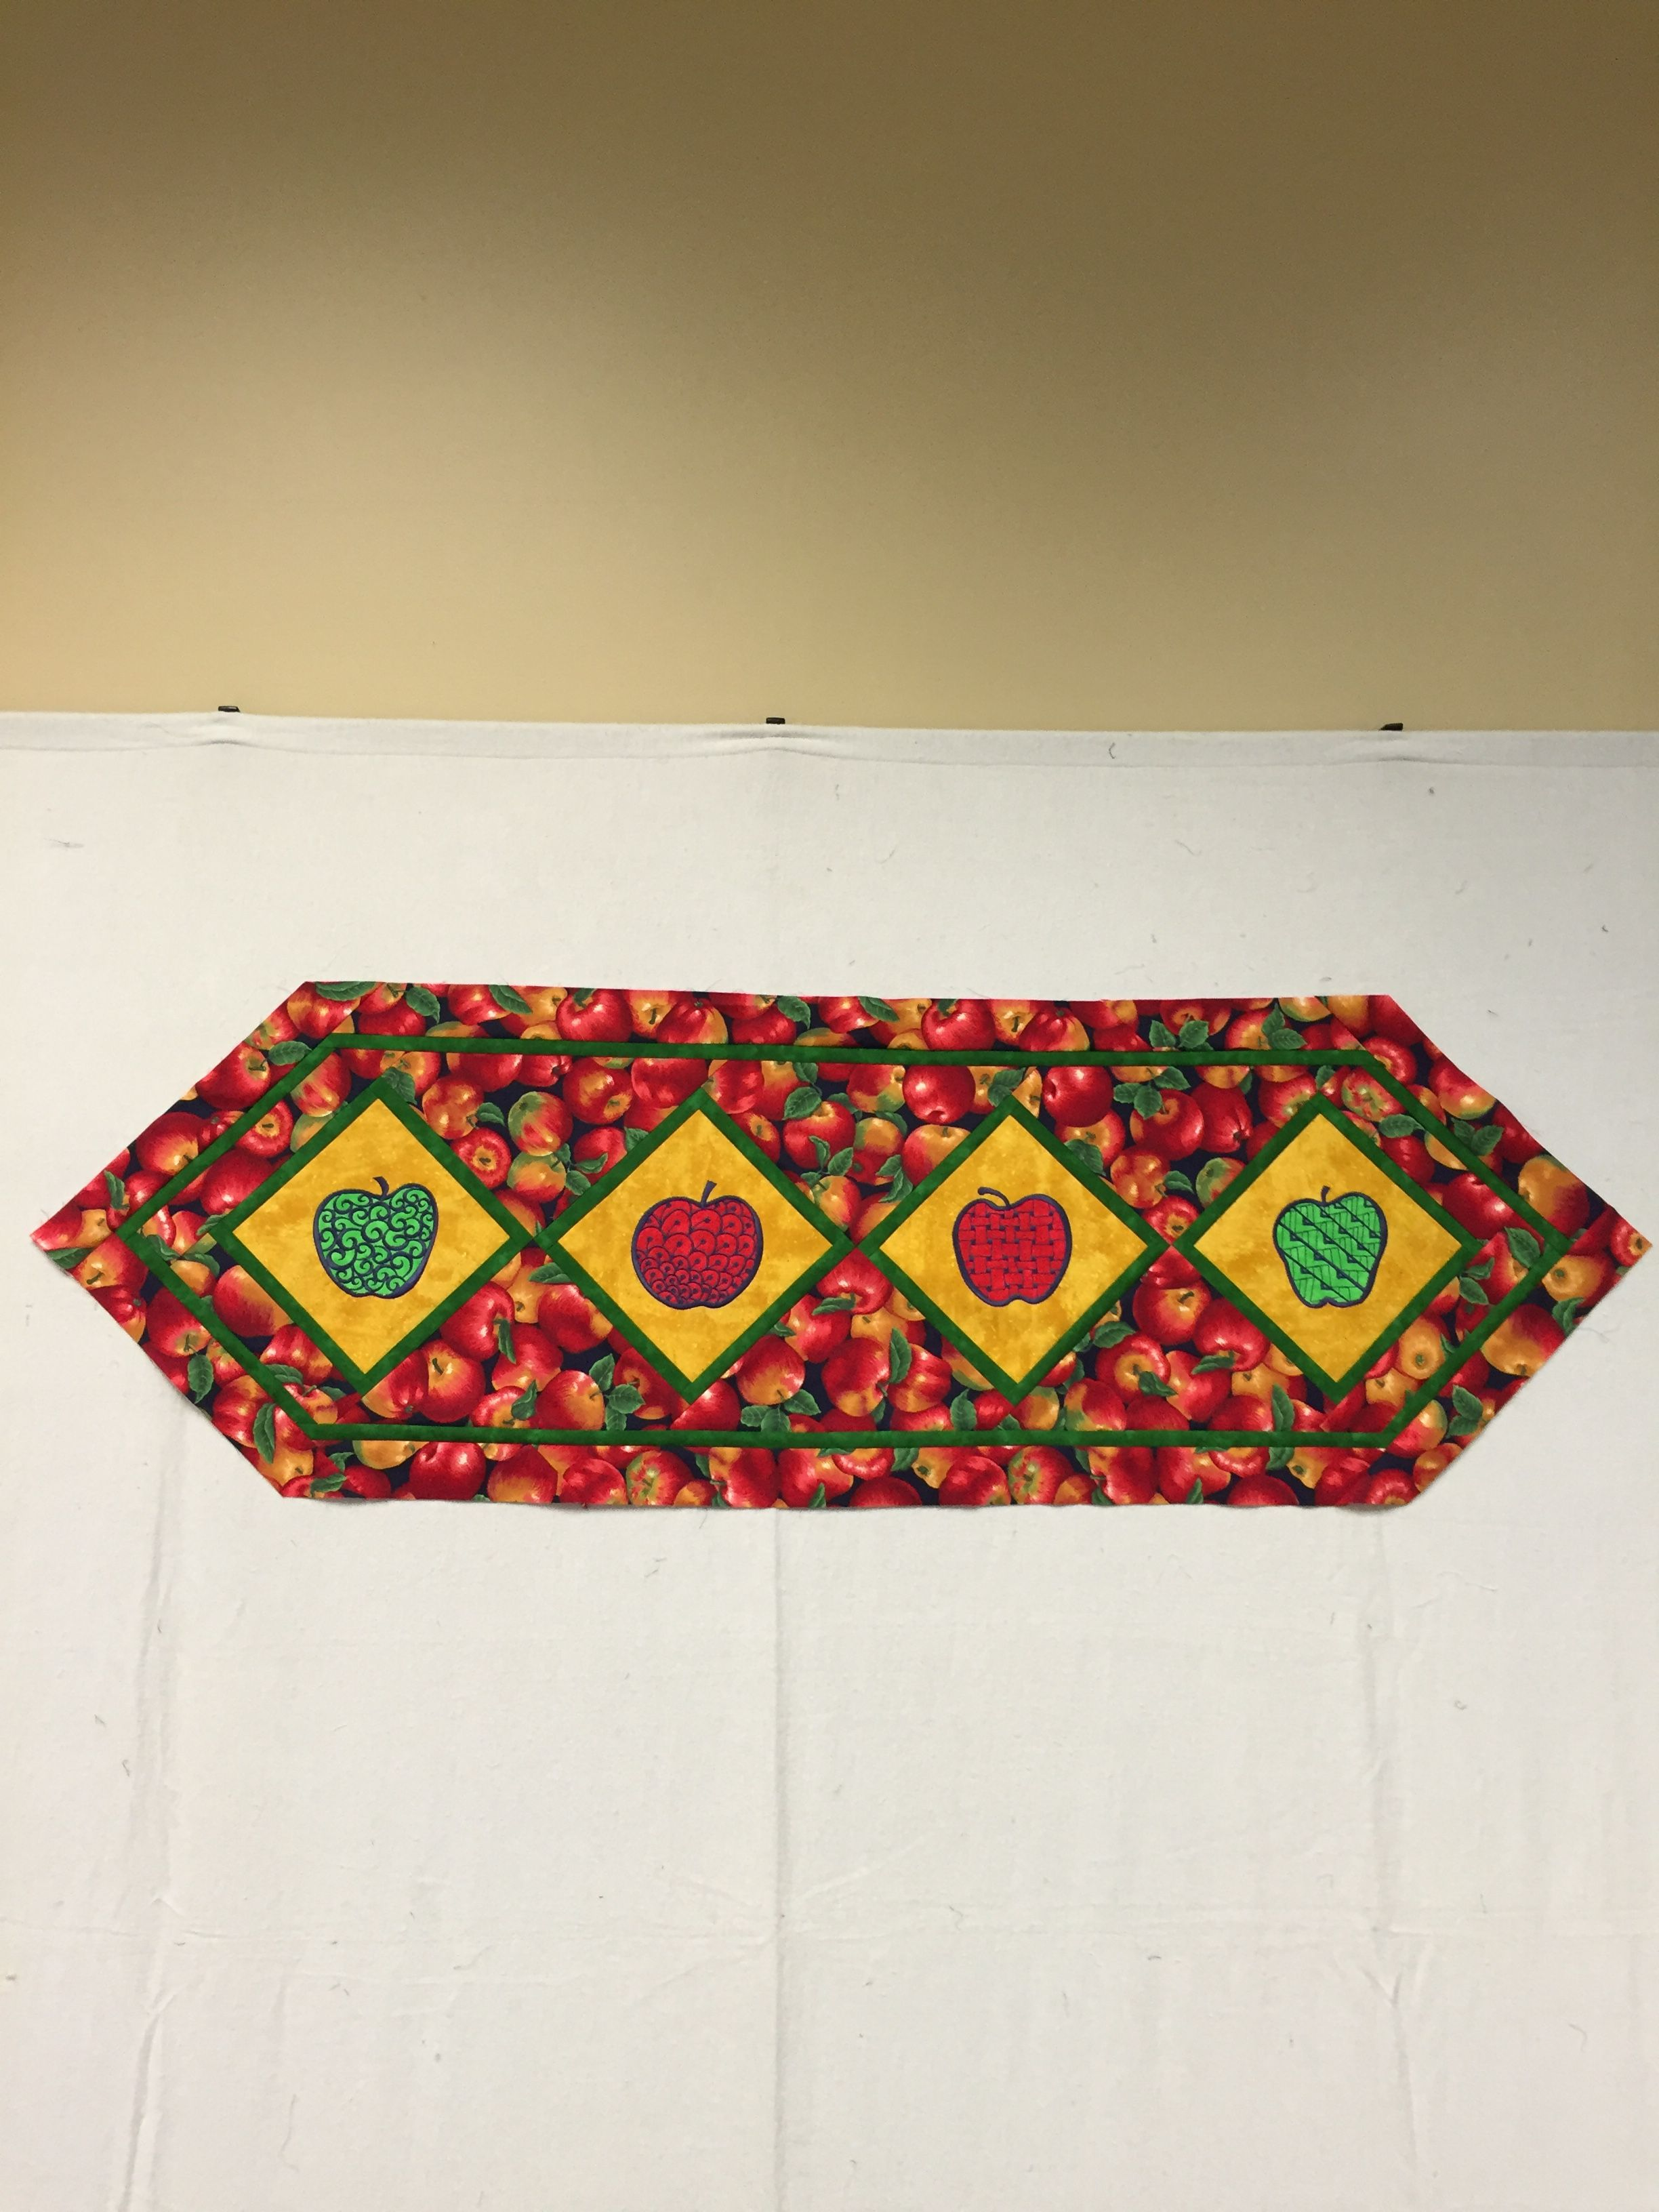 Super Job On This Apple Table Runner By Pammcdannold. San Francisco Stitch  Co.